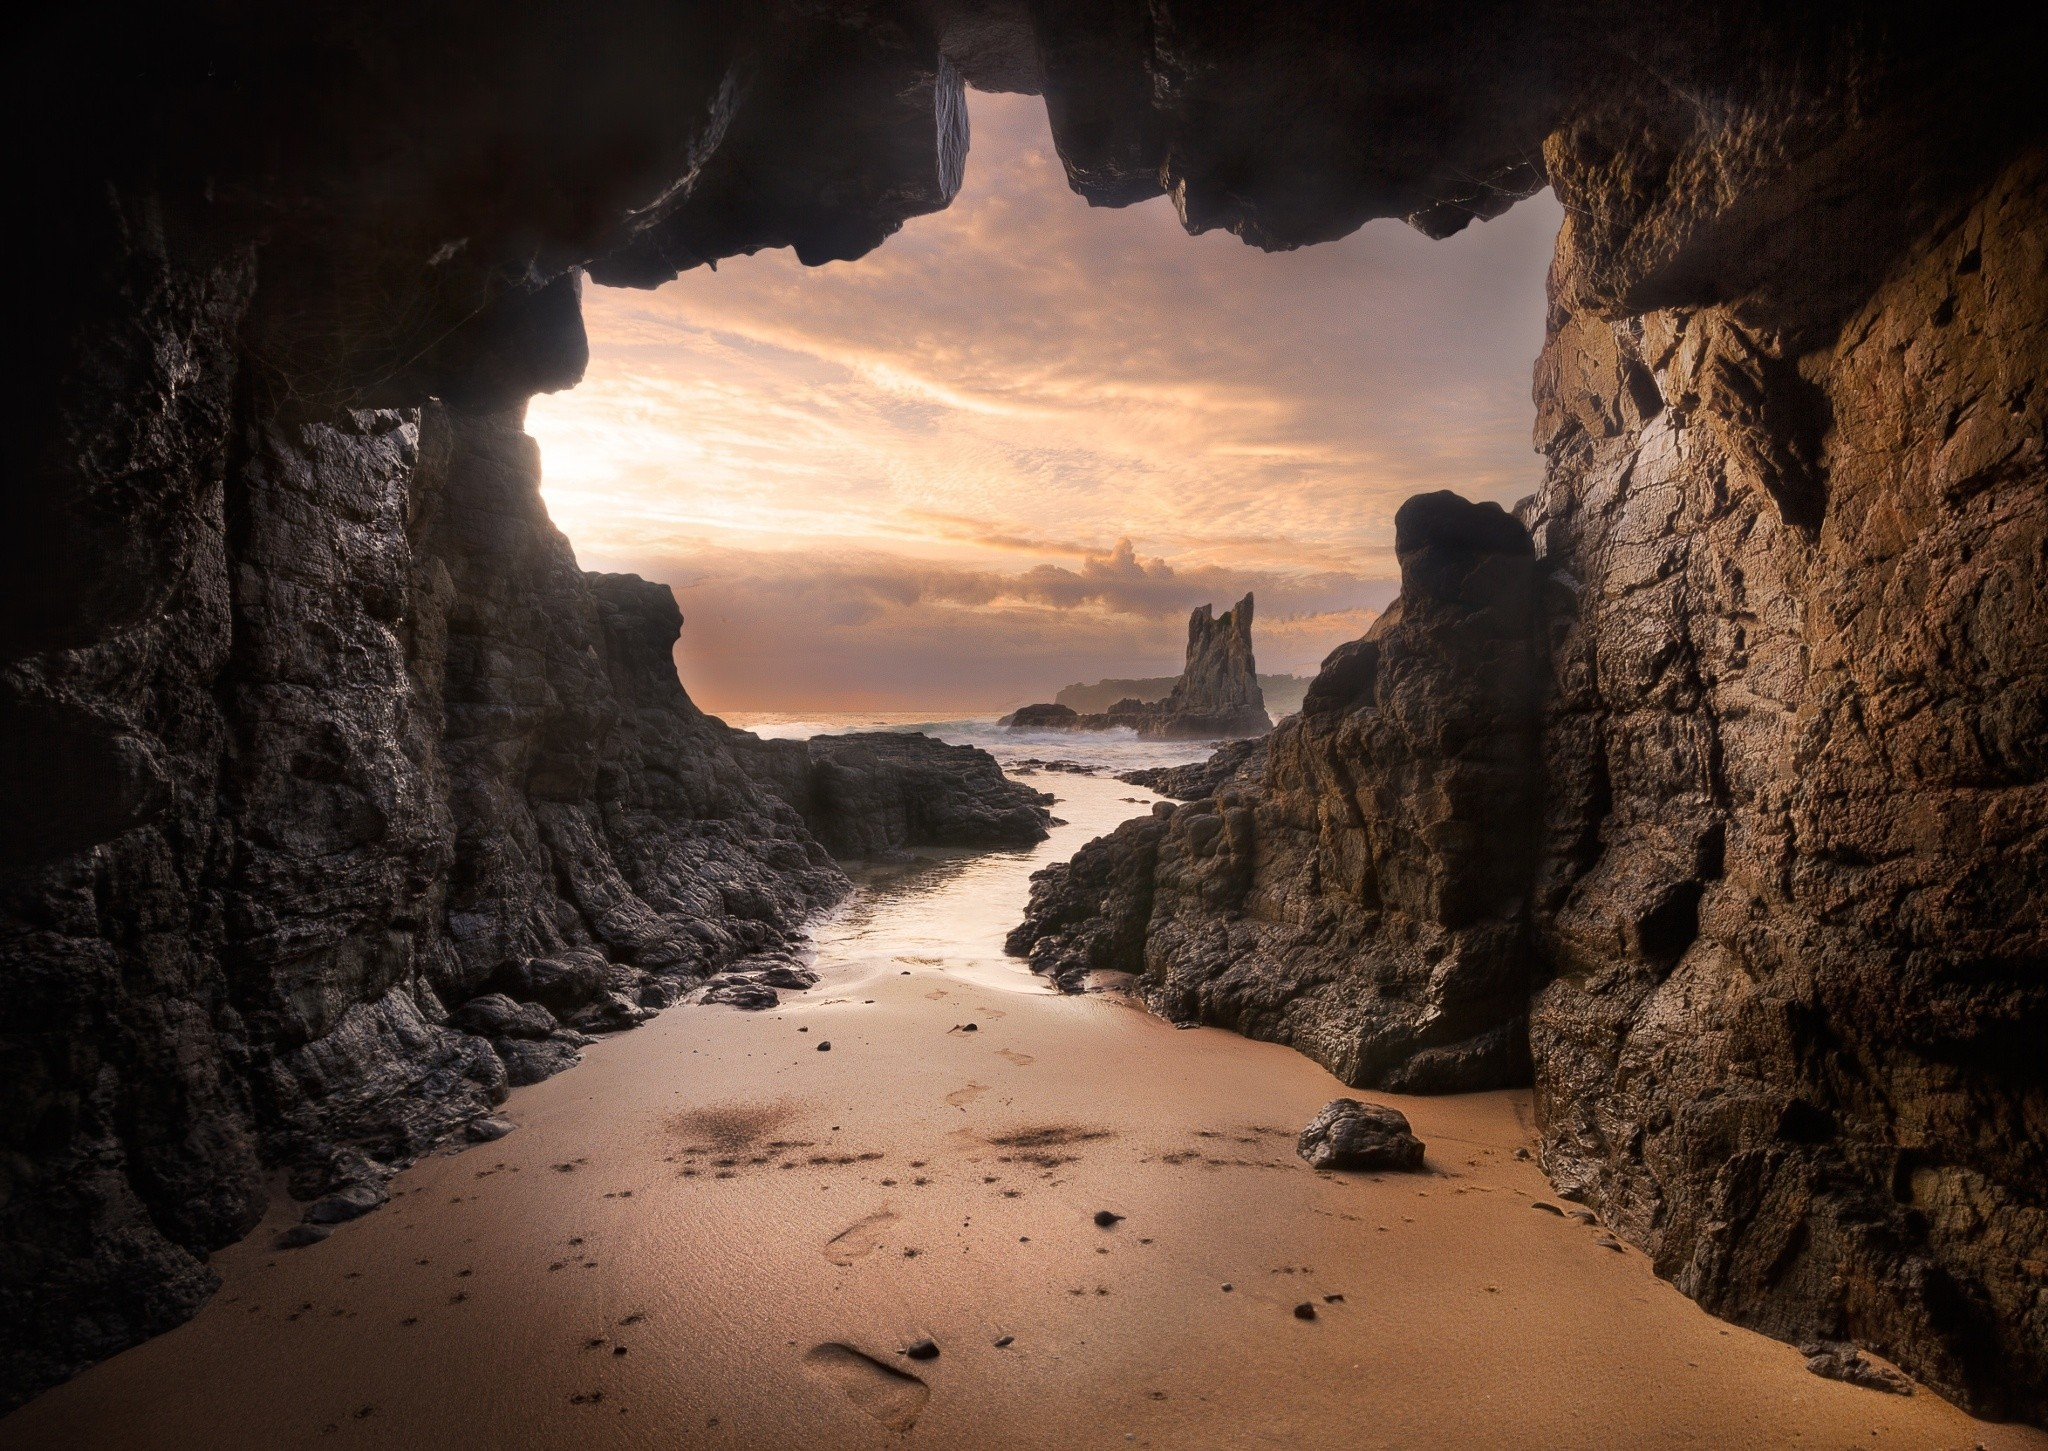 Wallpaper Cave: View From Beach Cave HD Wallpaper